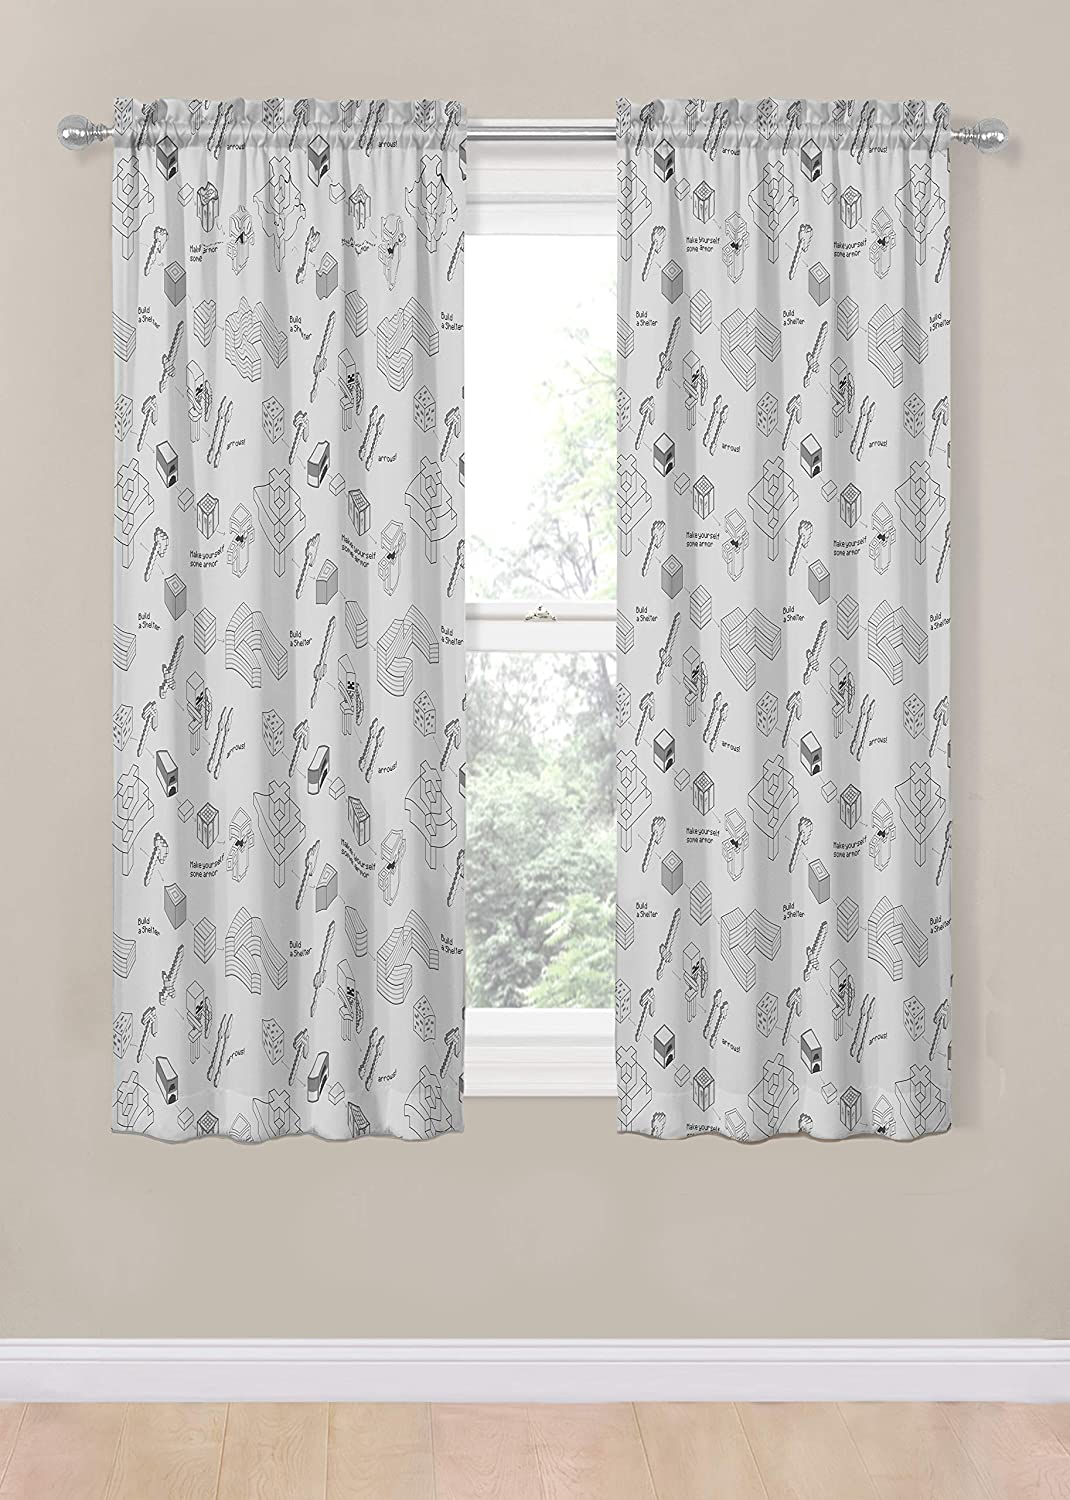 Beautiful Room D/écor /& Easy Set up Jay Franco Minecraft Survive Light 63 inch Drapes 4 Piece Set Window Curtains Include 2 Panels /& 2 Tiebacks Official Minecraft Product